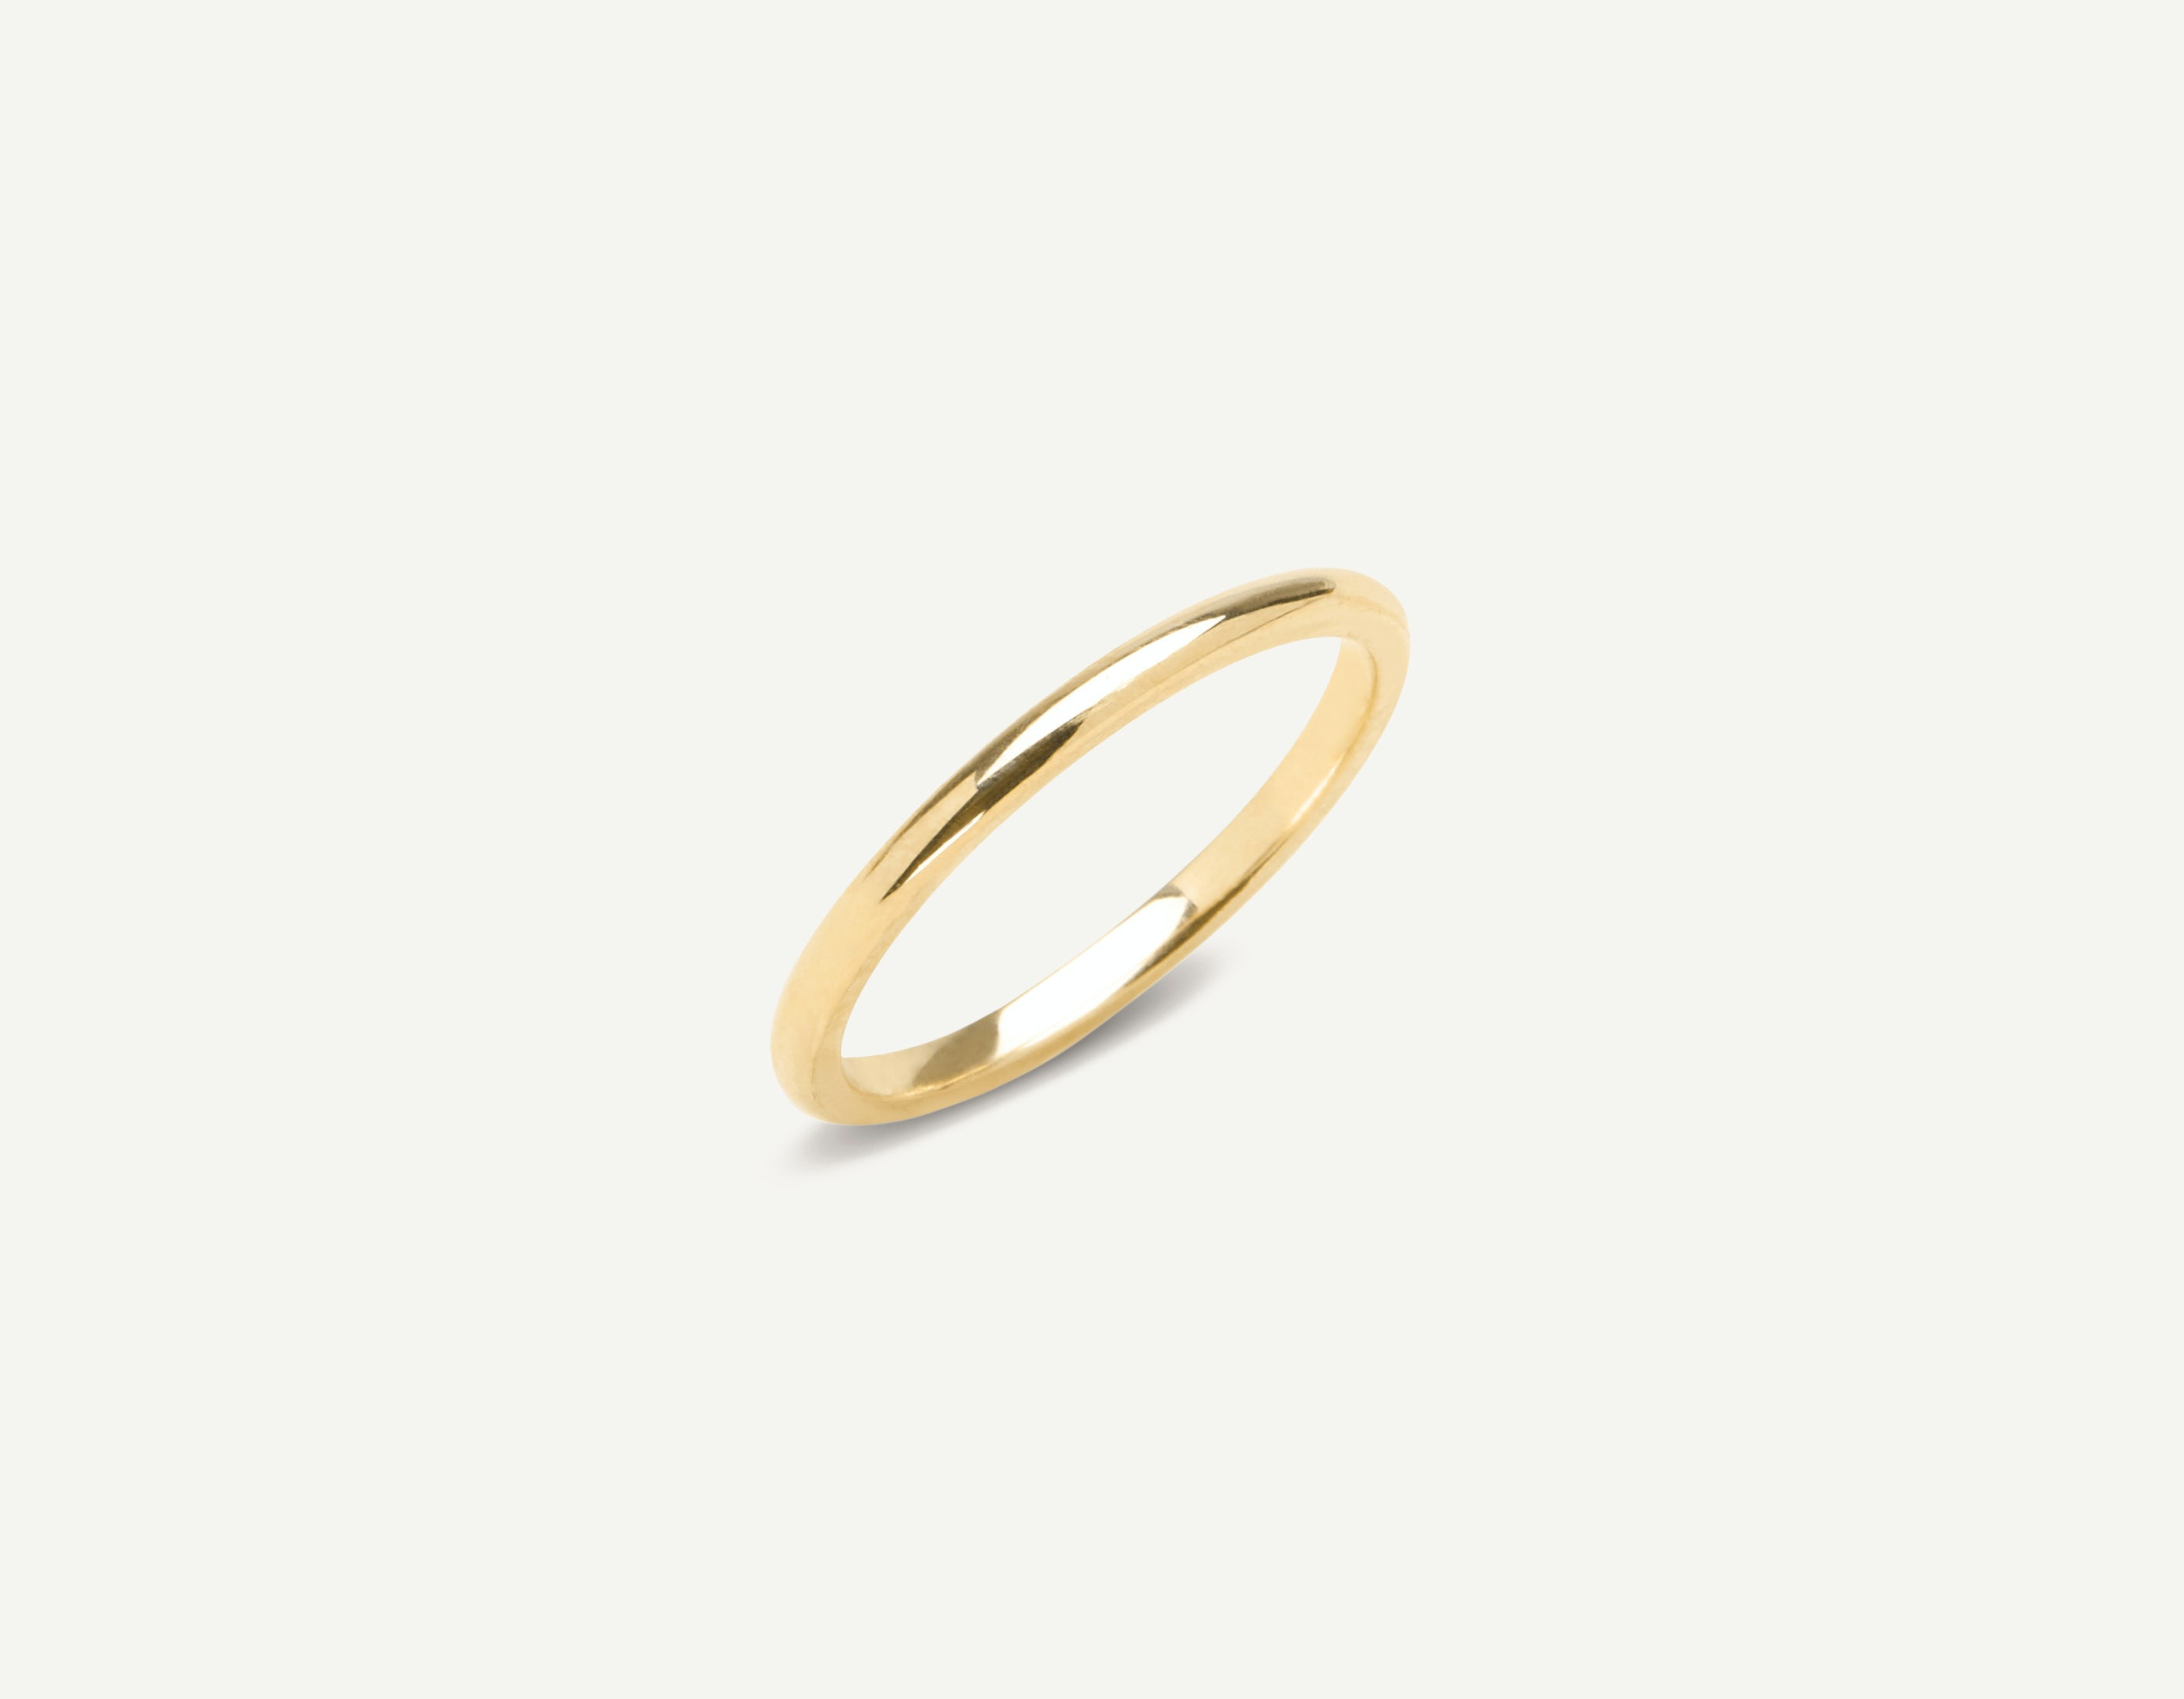 18k Gold Wedding Band In 1 5mm Round By Vrai Oro